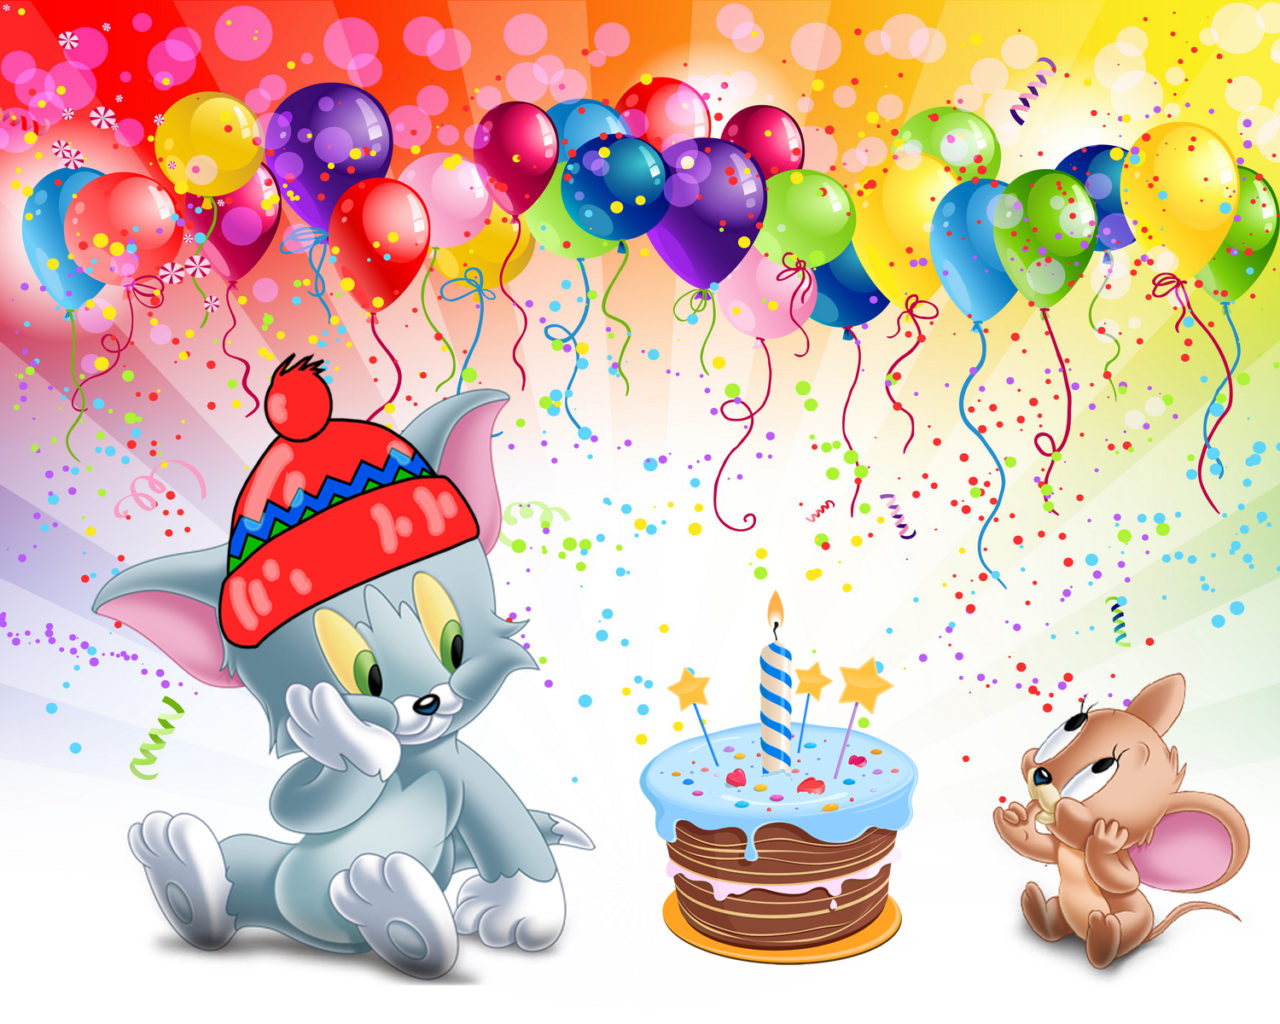 Cute Wallpapers For Your Lock Screen Tom And Jerry First Birthday Cake Desktop Hd Wallpaper For